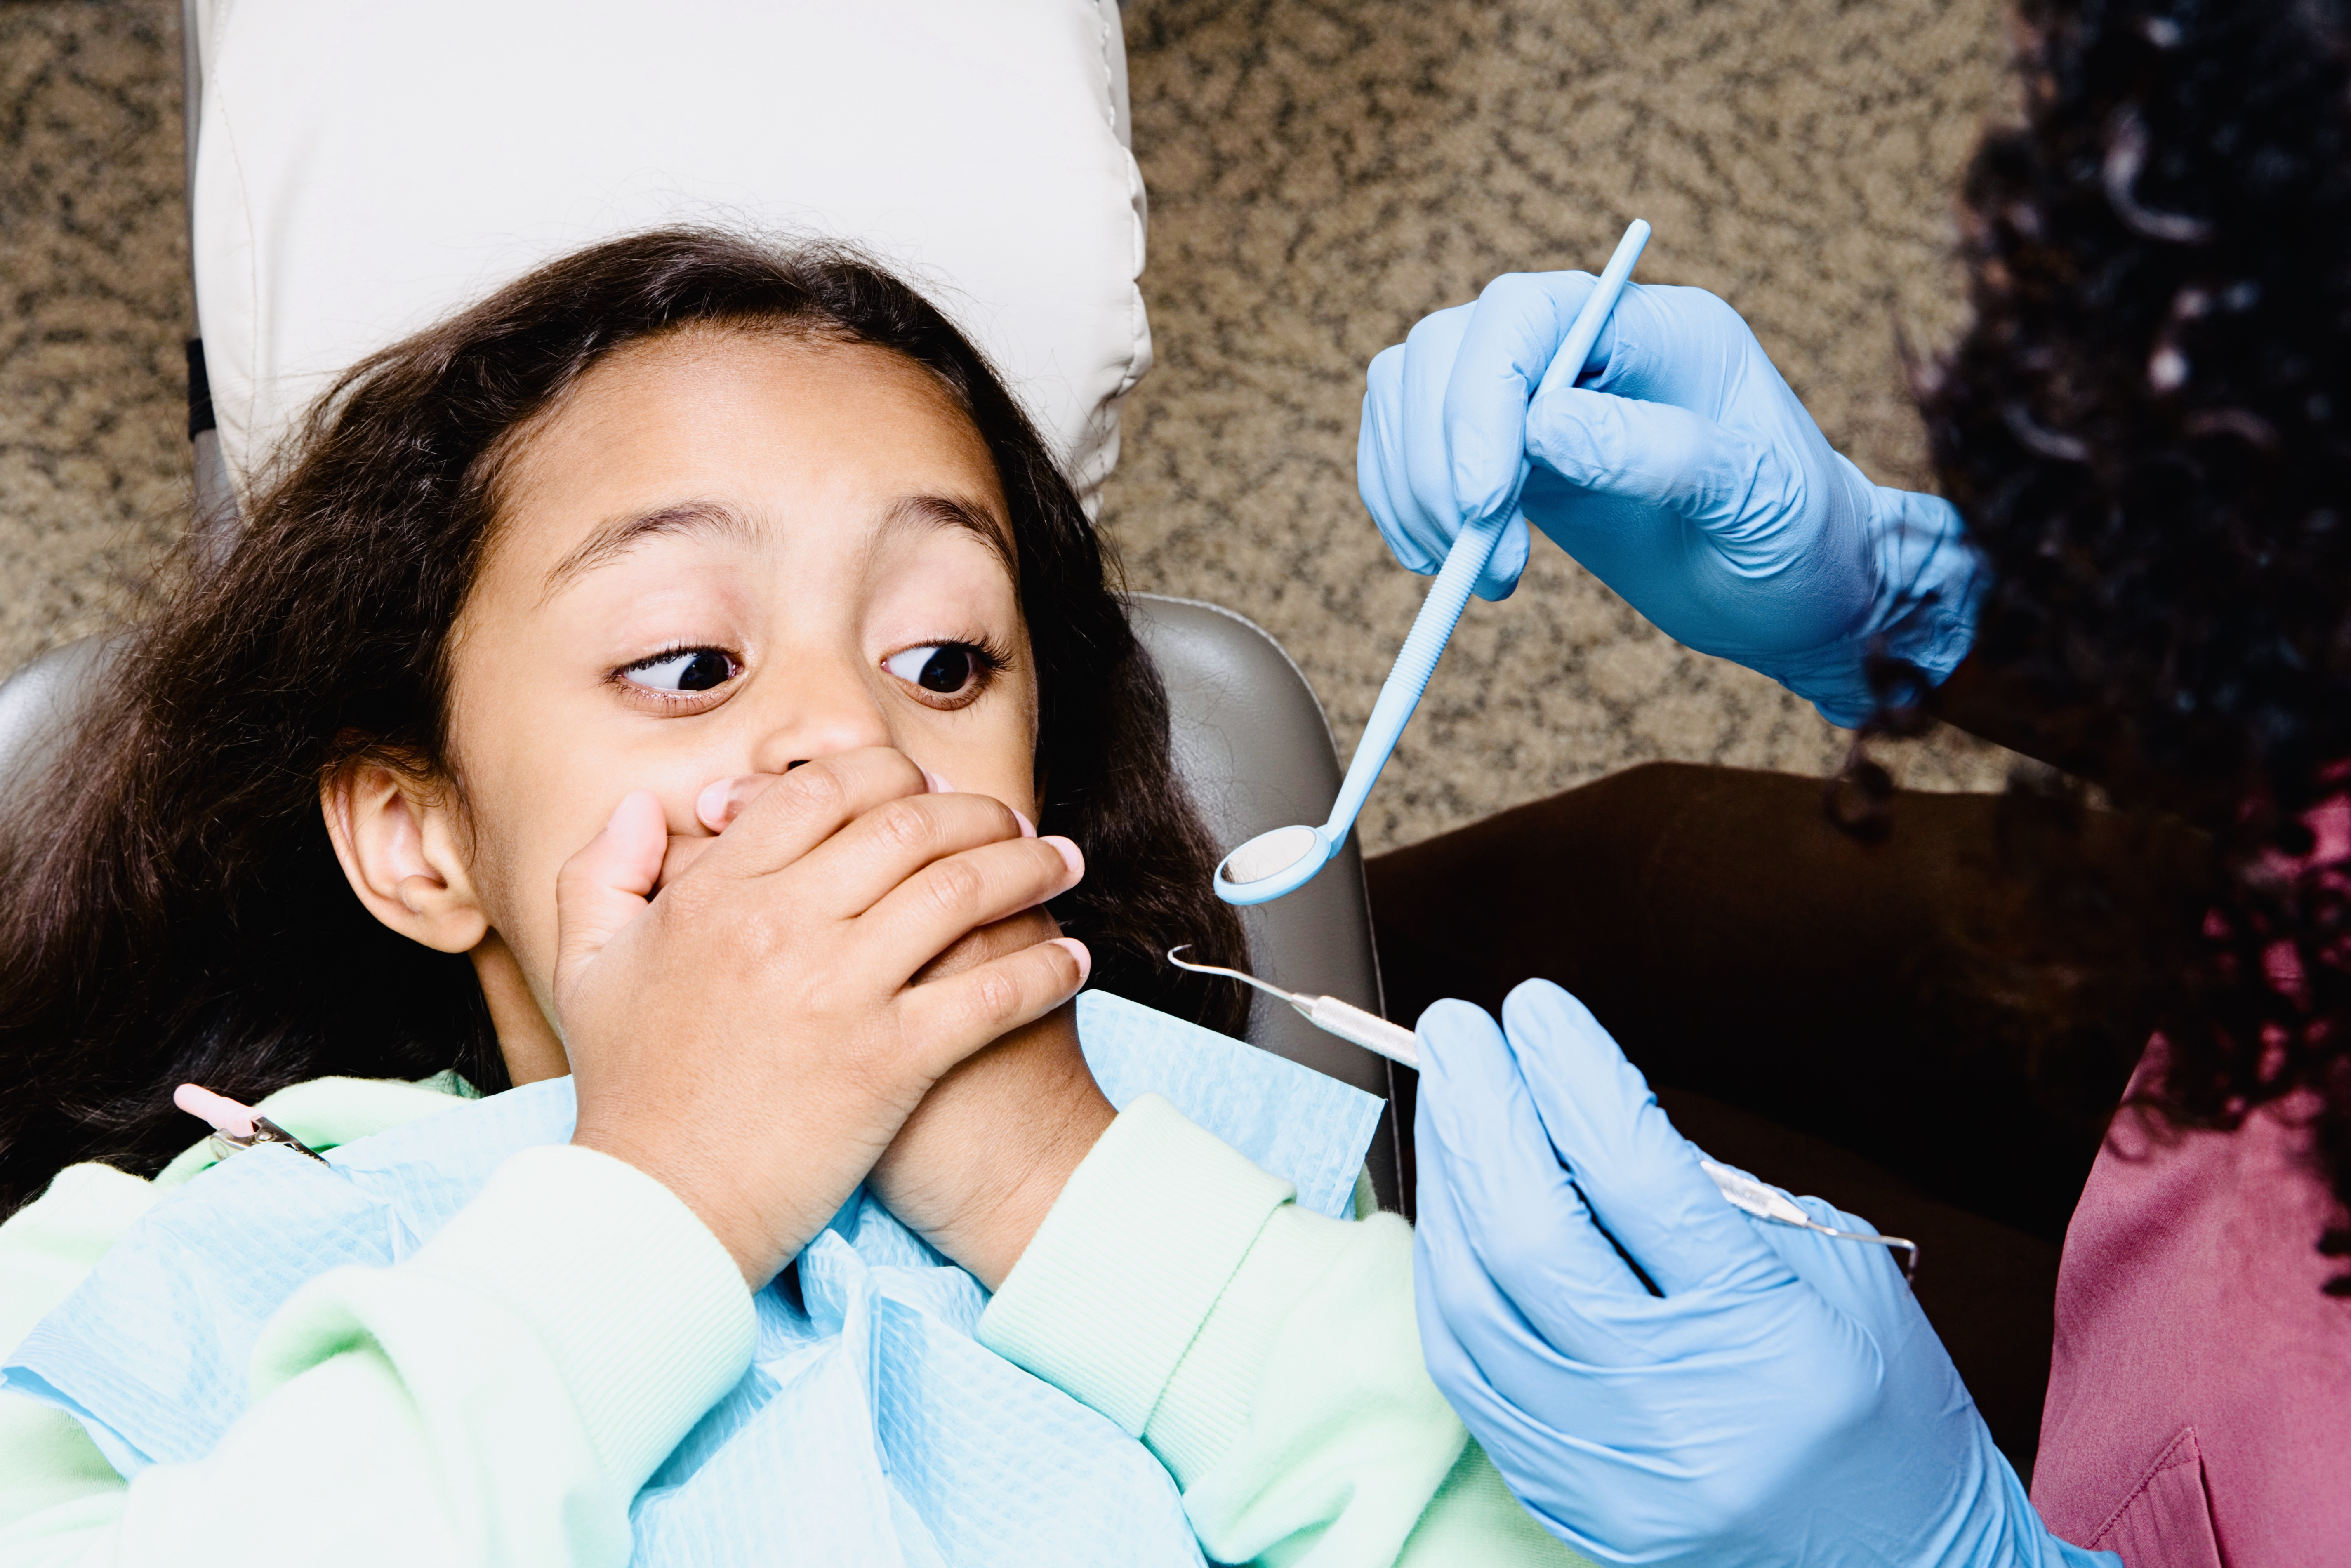 6 Ways to Ease Your Child's Anxiety About Going to the Dentist